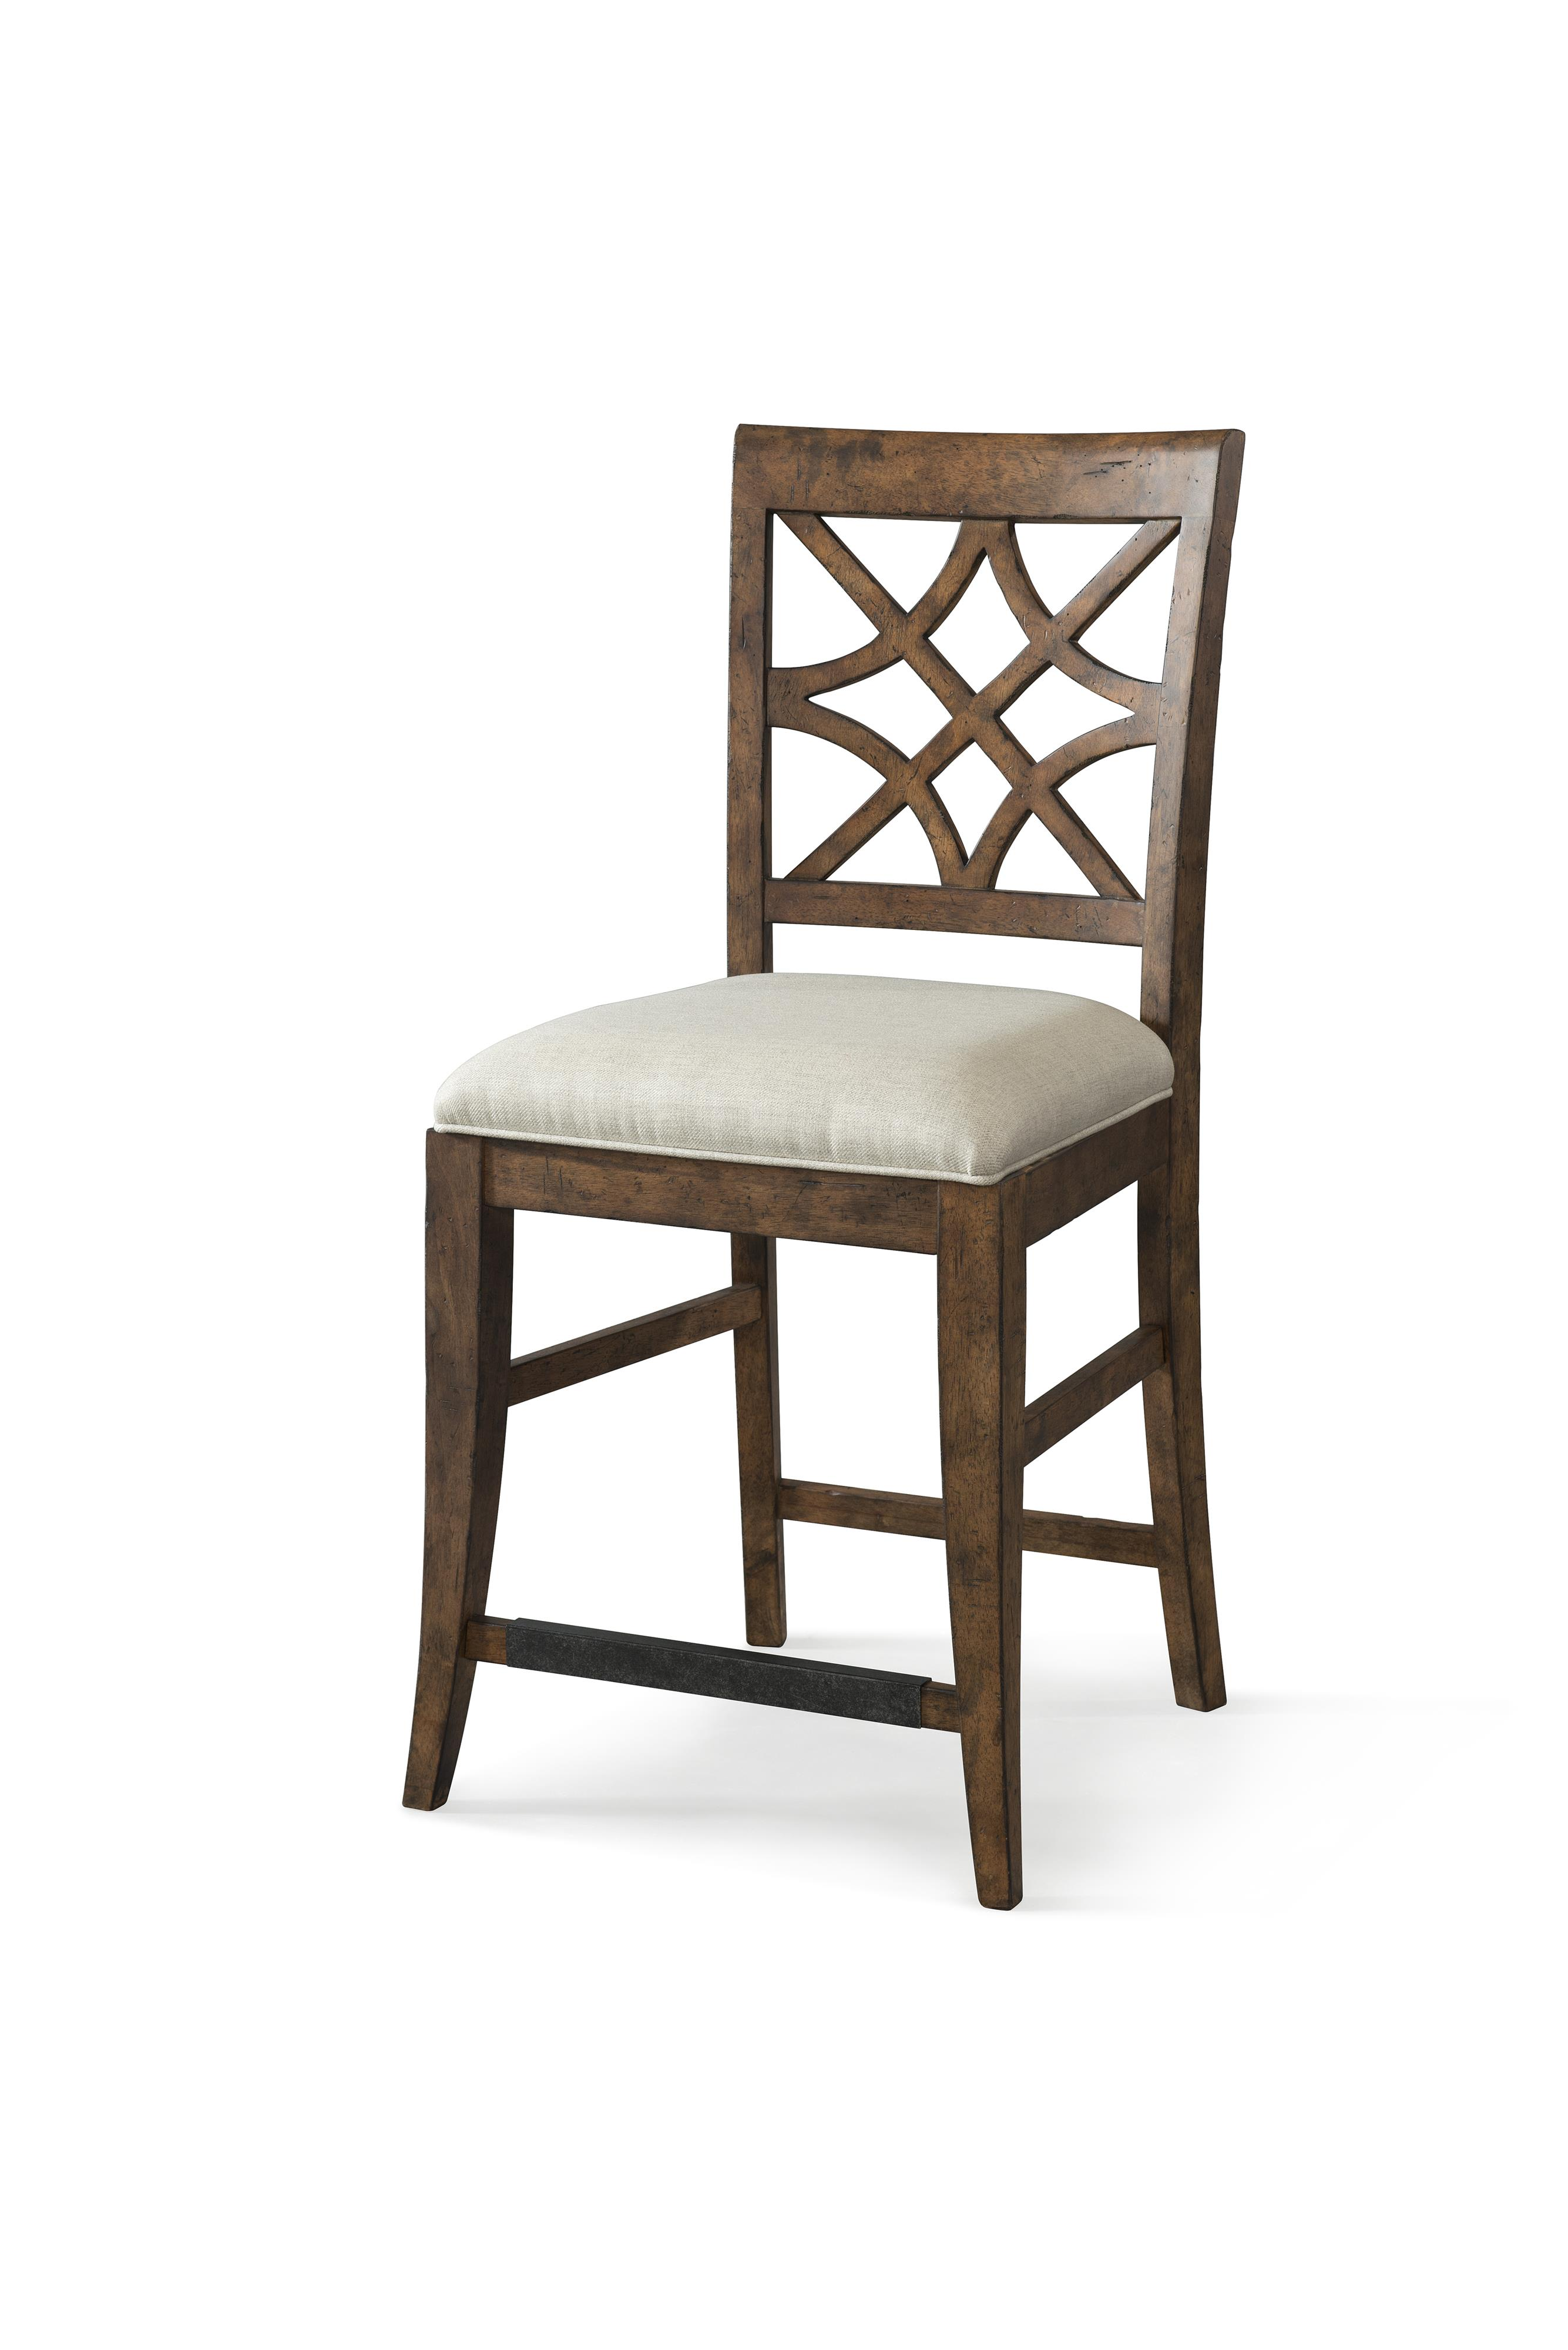 Trisha Yearwood Home Nashville Counter Height Chair by Klaussner at HomeWorld Furniture